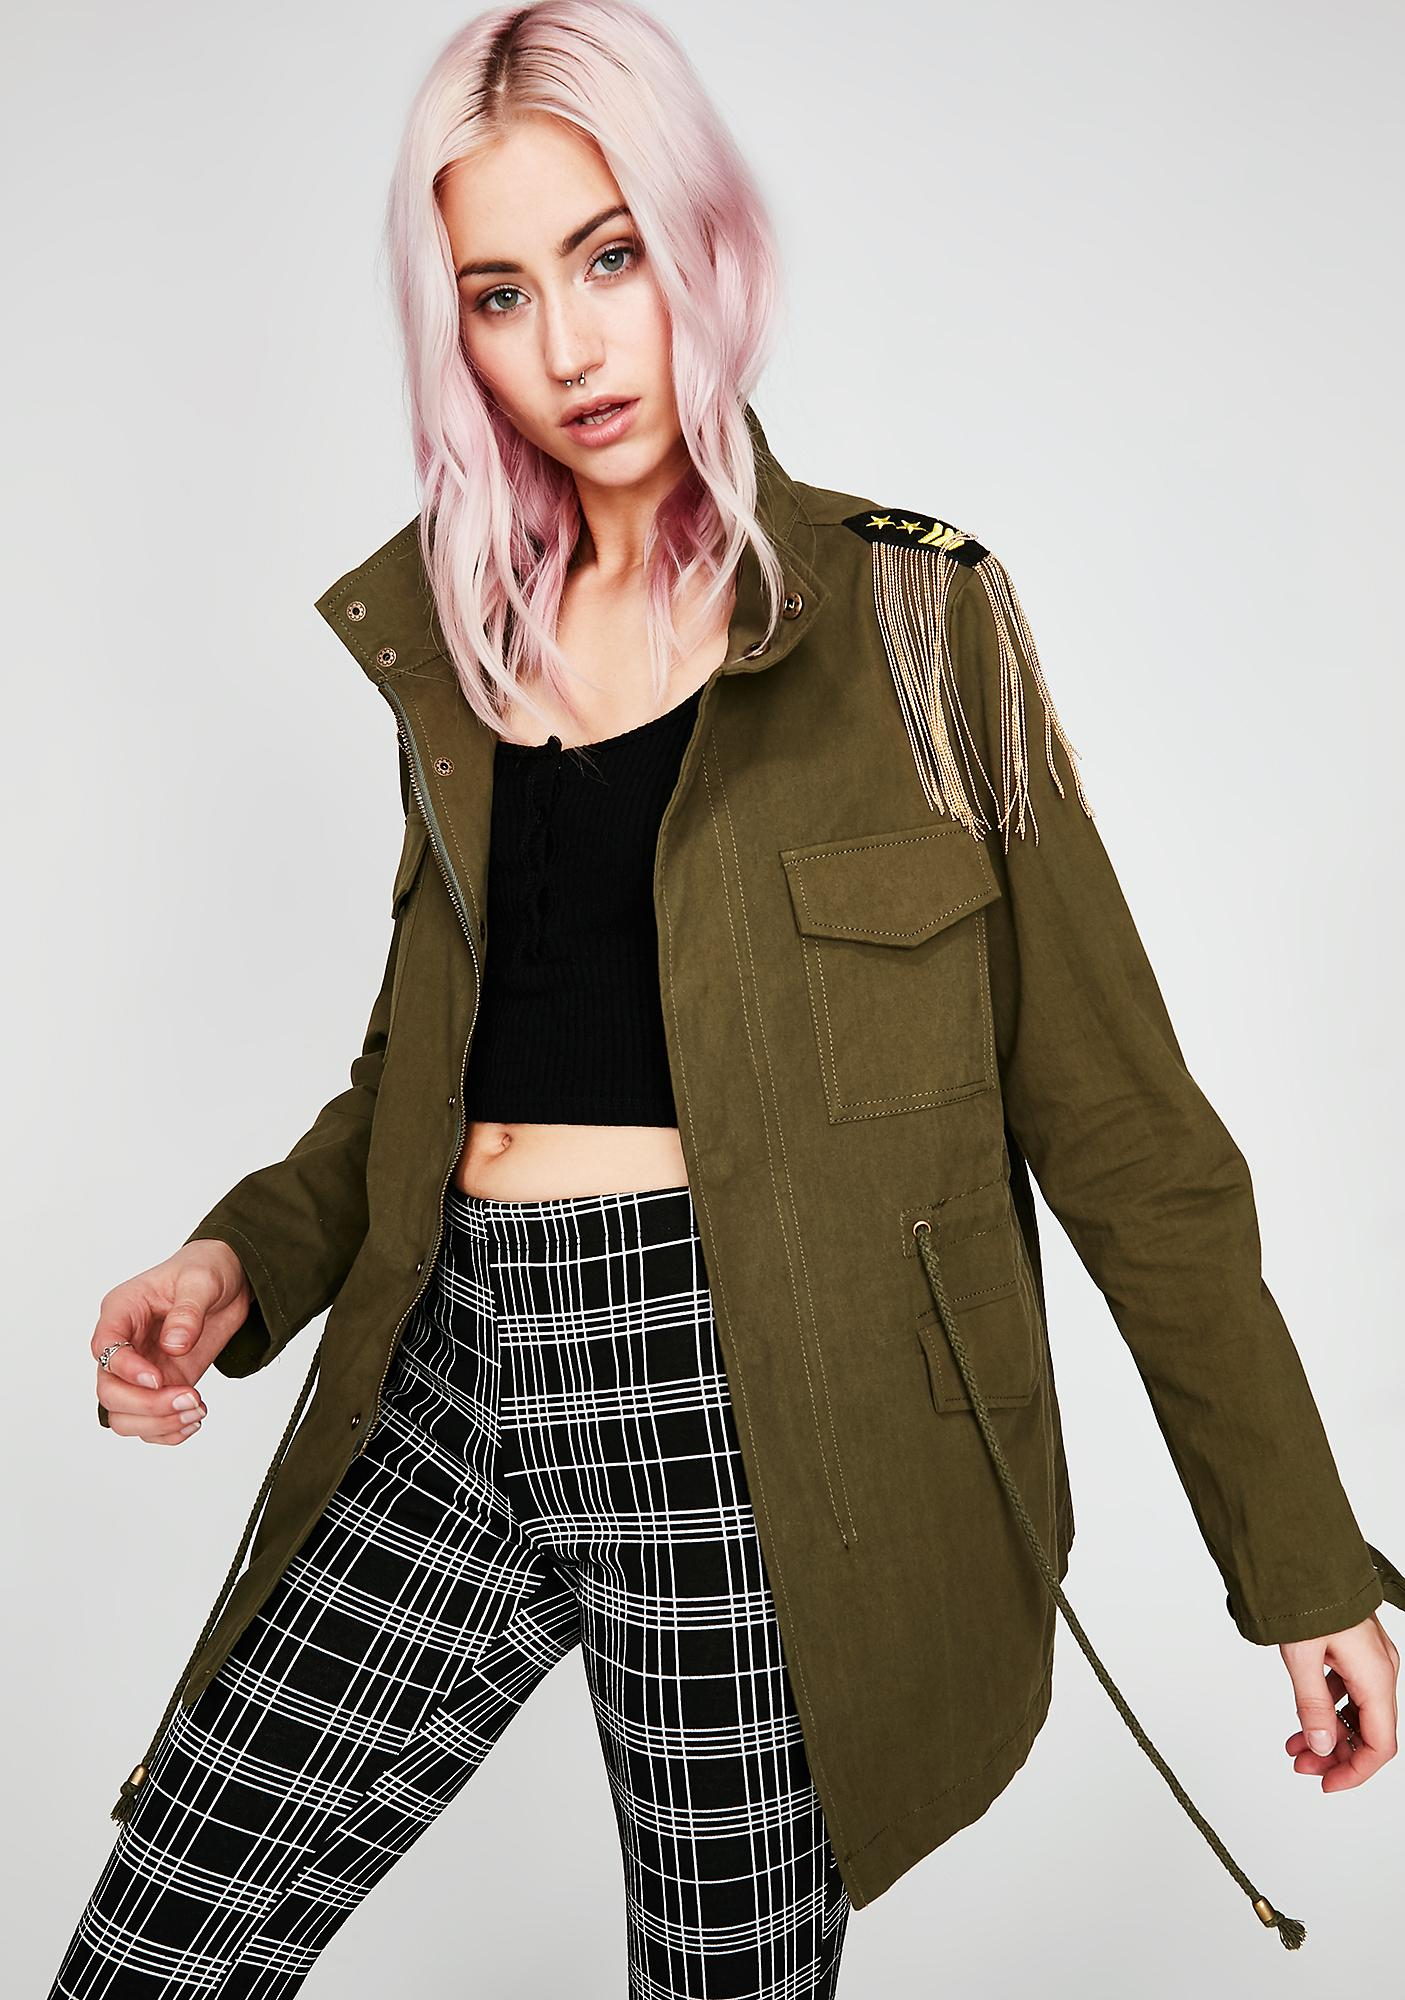 Olive Next Rank Army Jacket